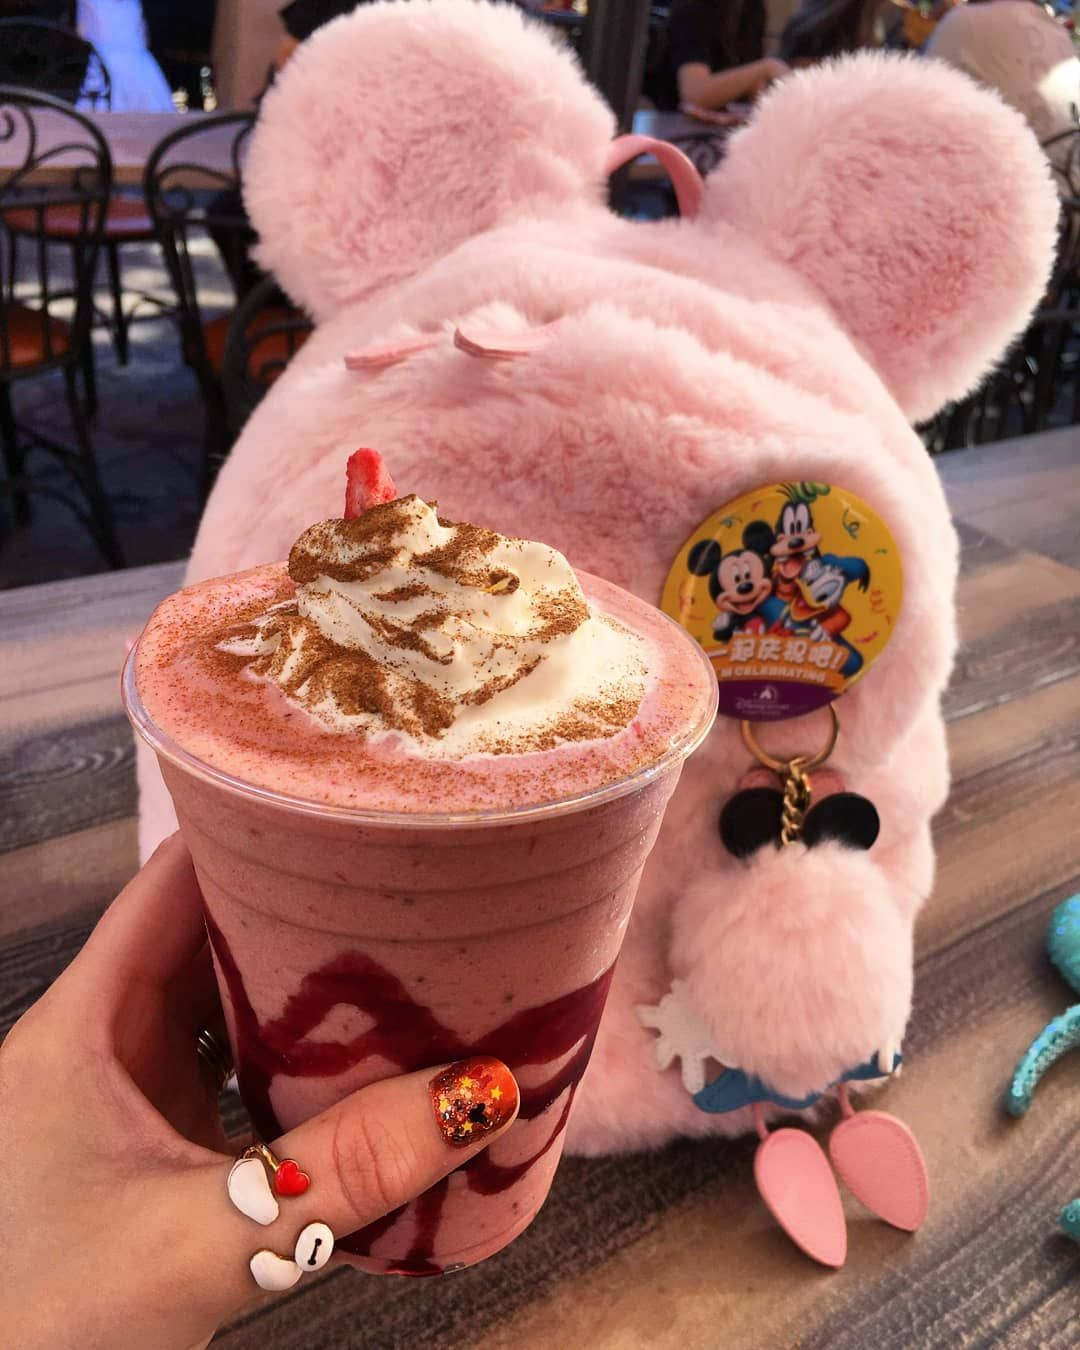 Jenny Chris On Instagram Frozen Strawberry Horchata At Disneyland Rancho Del Zocalo This Was Very Good And Very Strawber Horchata Disneyland Disney Food